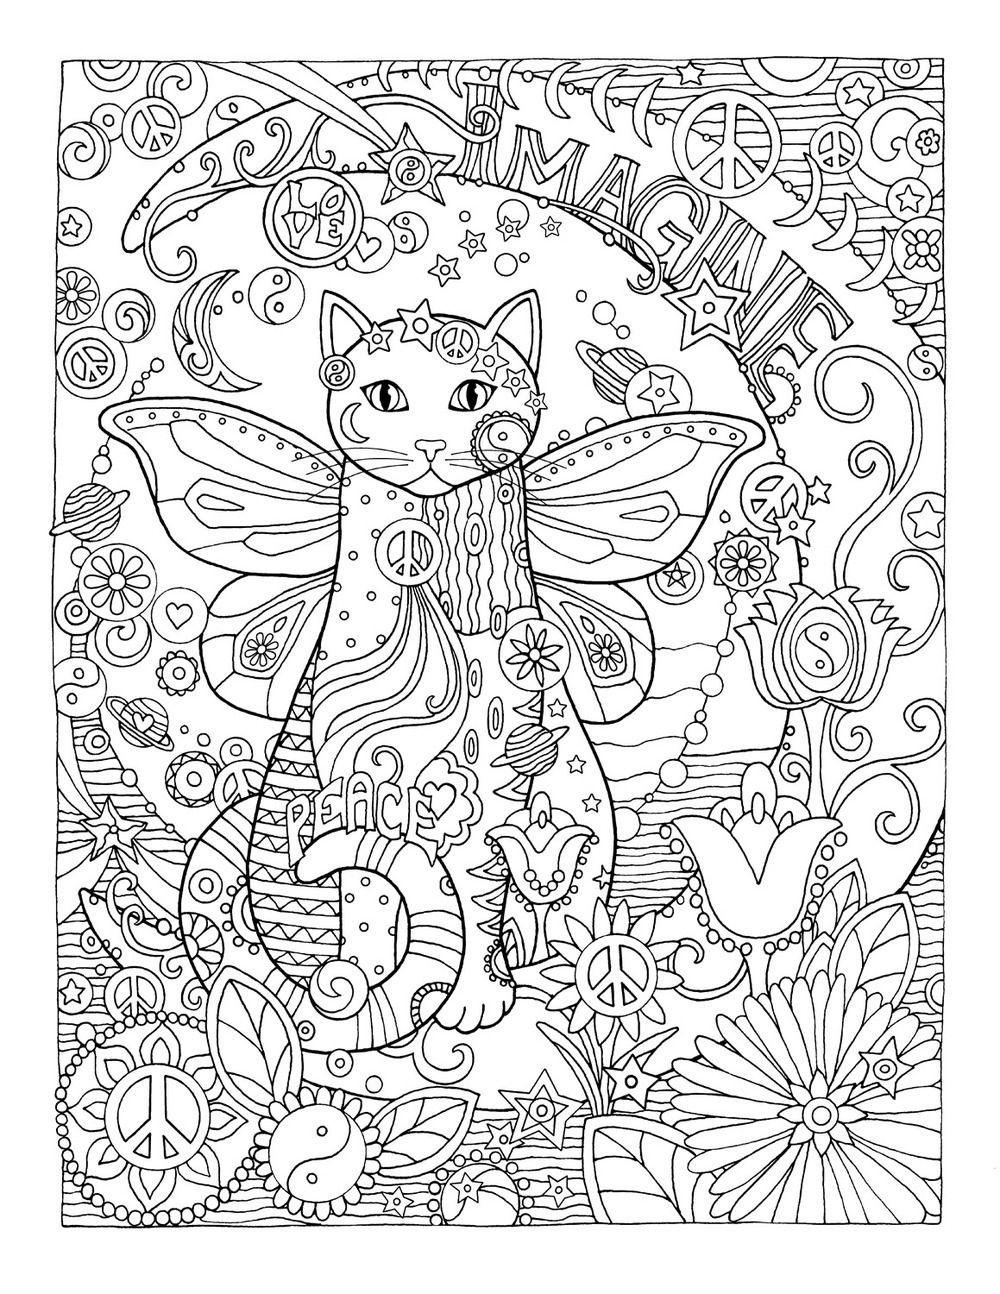 Creative Cats Colouring Book Imagine By Marjorie Sarnat